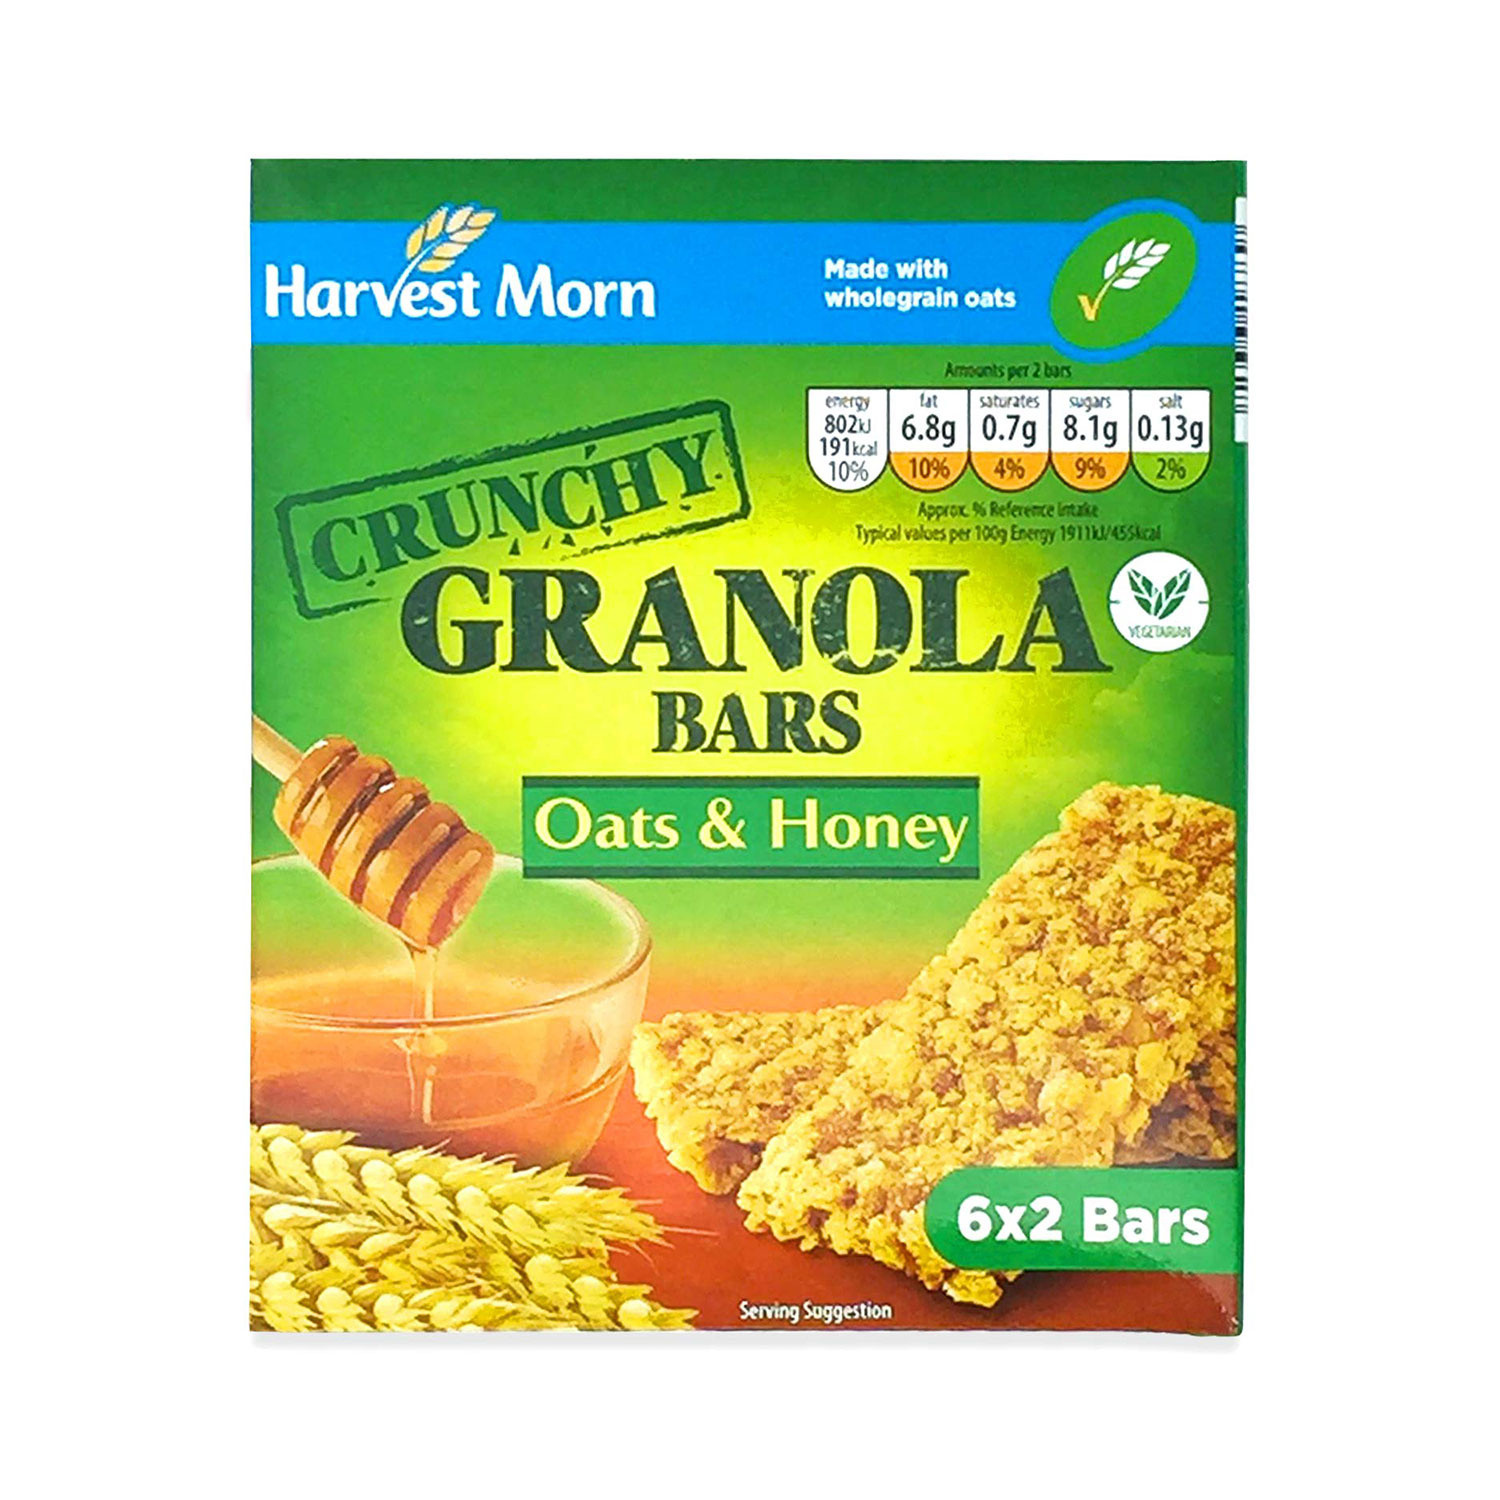 Crunchy Granola Bars Oats And Honey